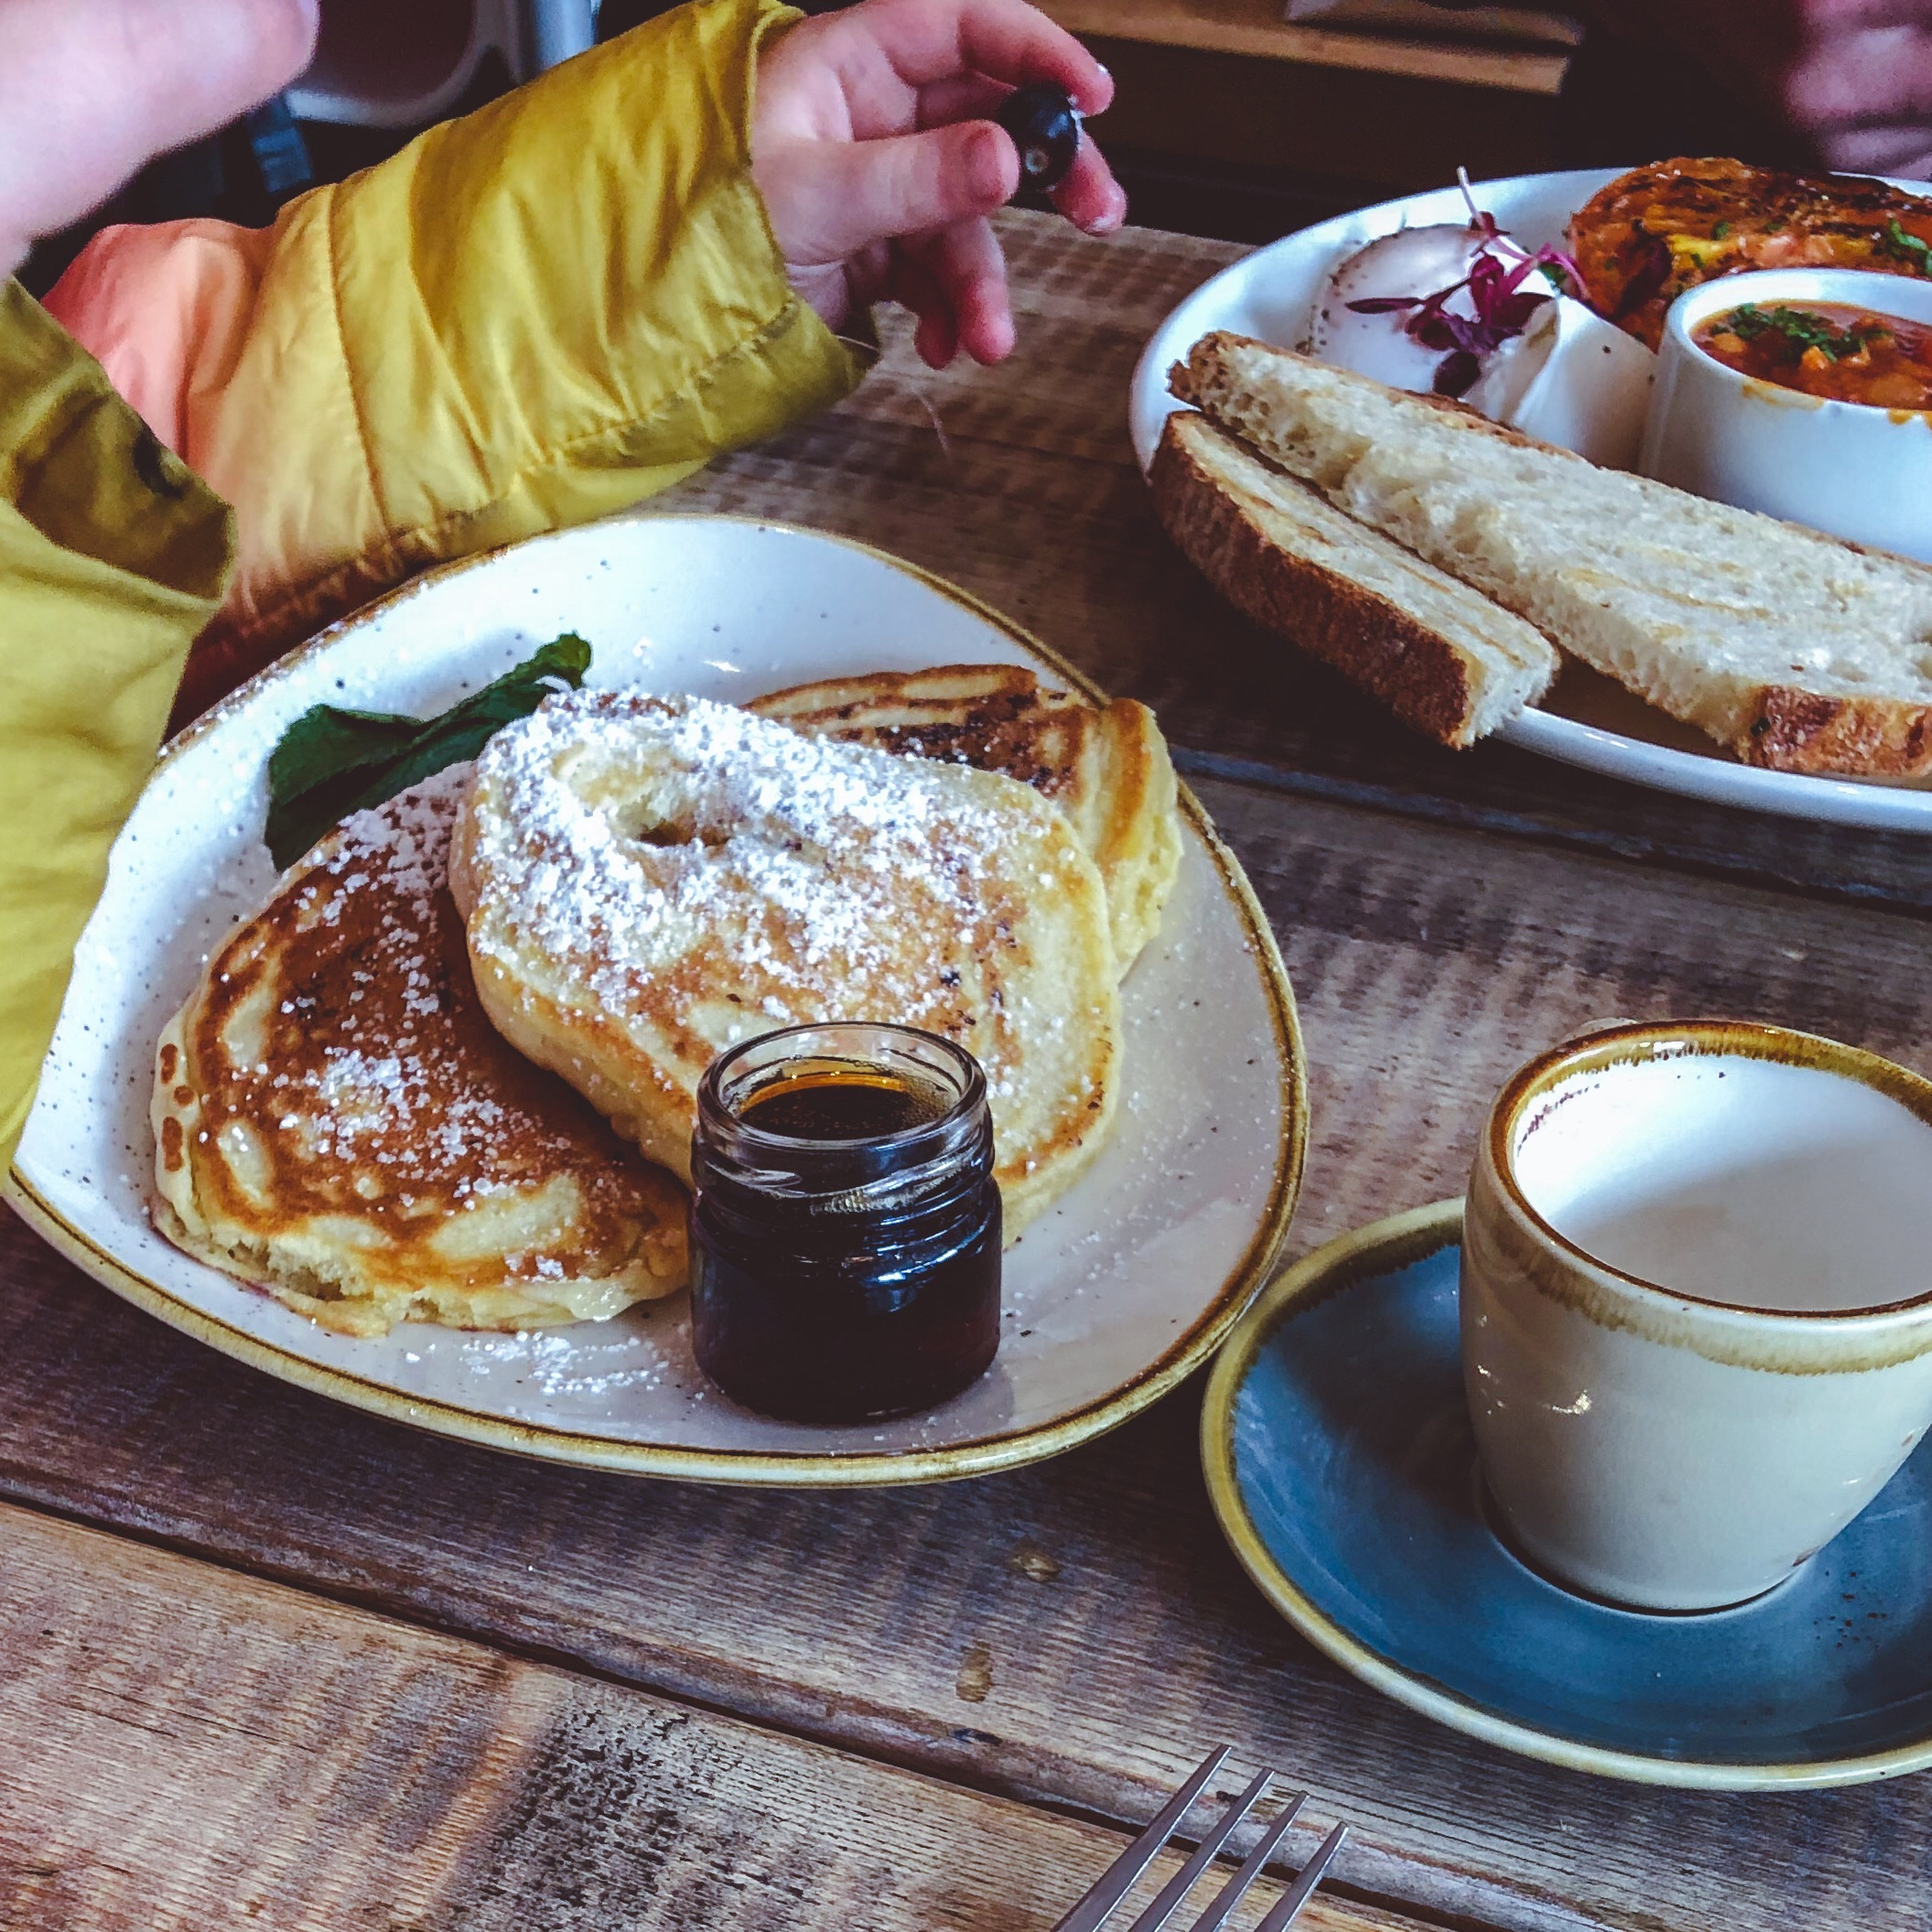 Where to go for brunch with kids in Sussex